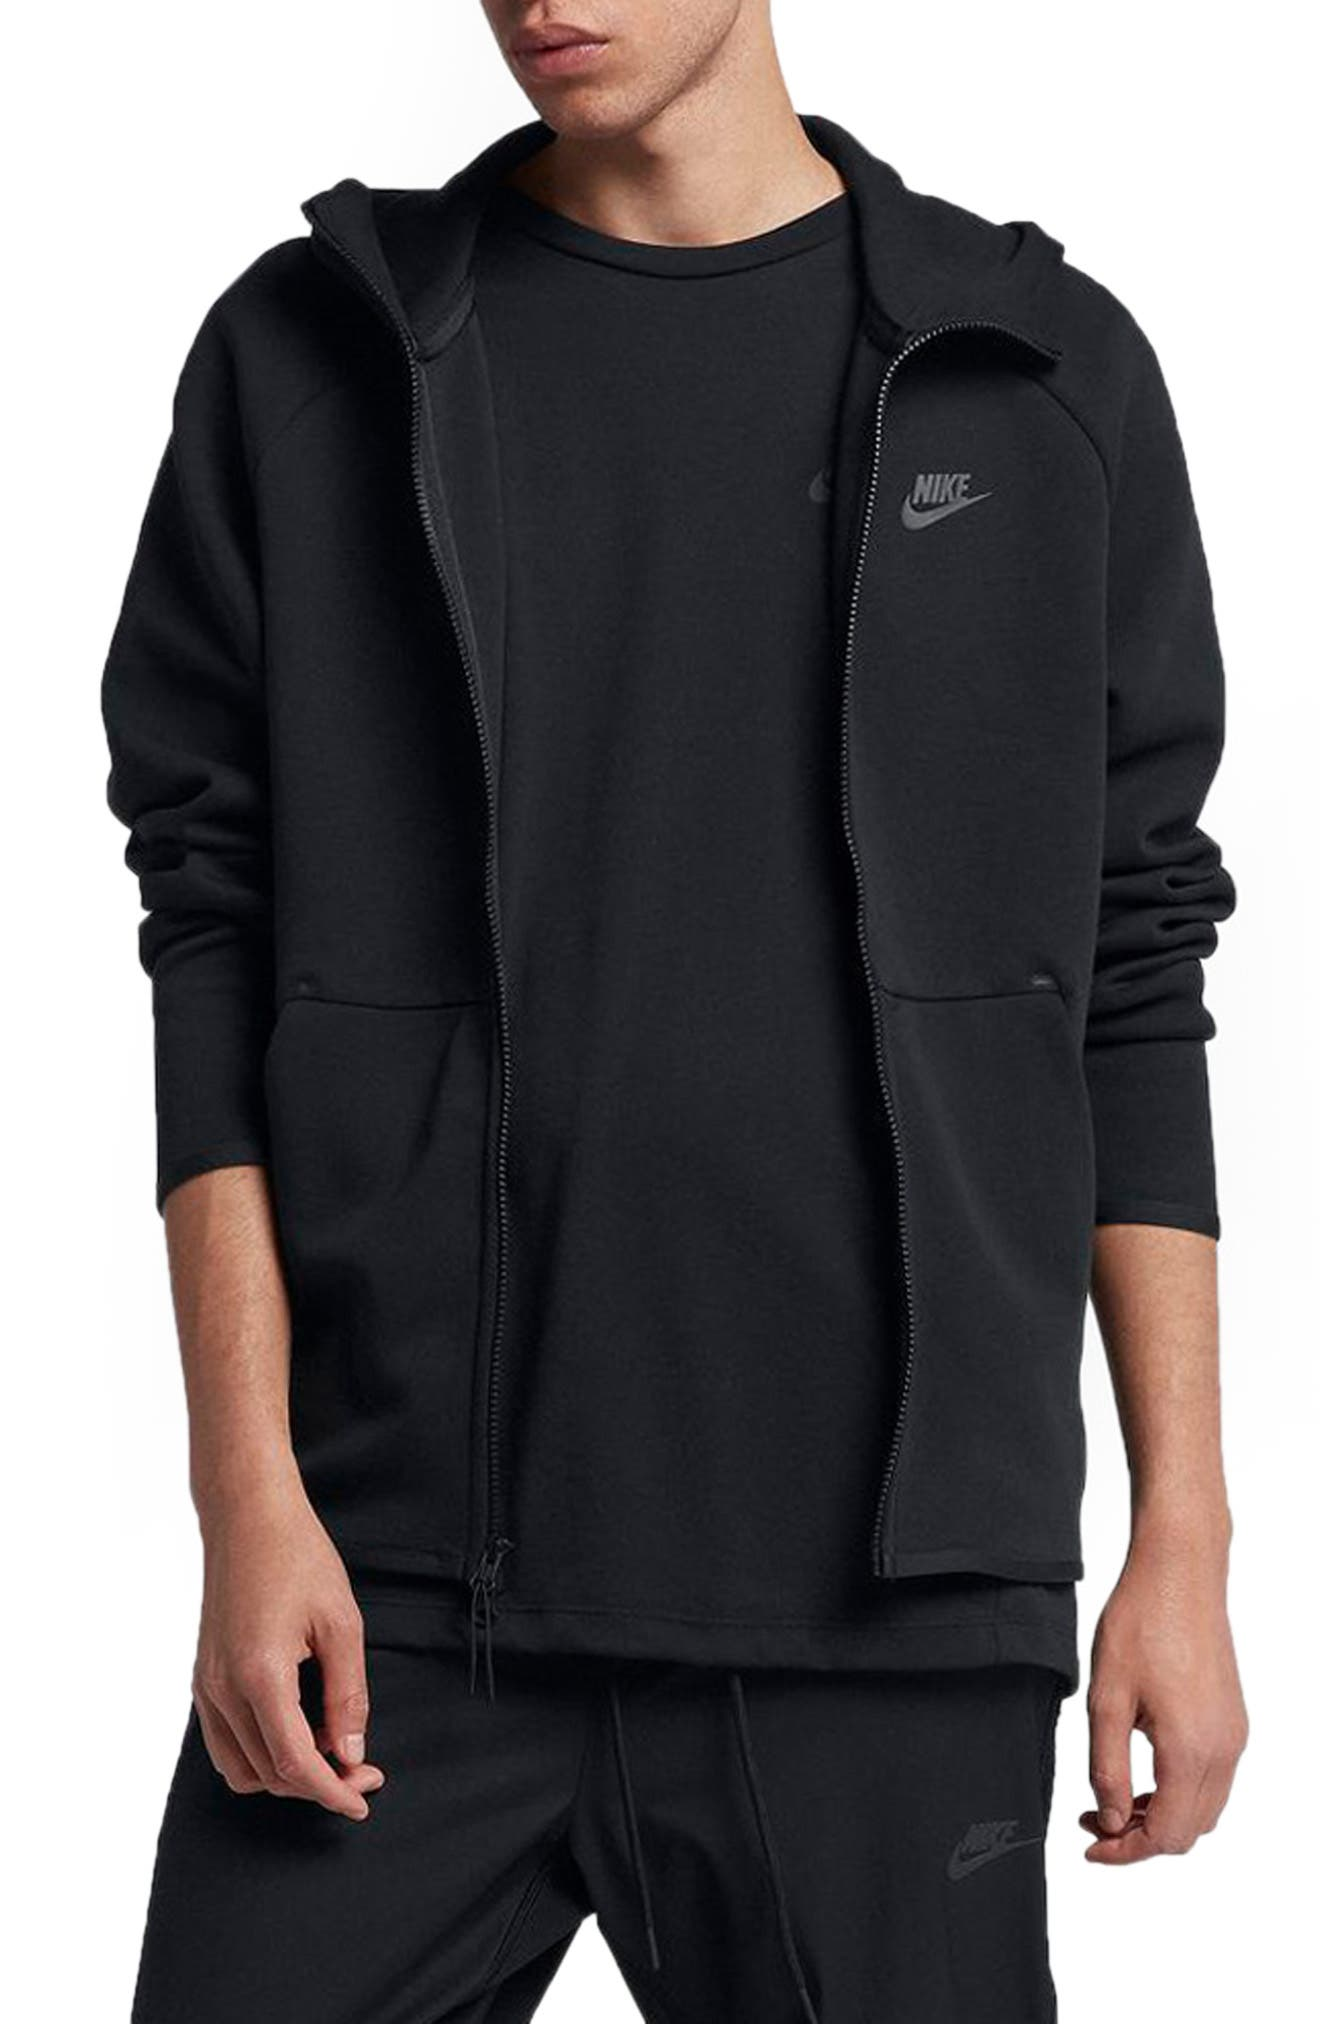 NIKE, Sportswear Tech Fleece Zip Hoodie, Main thumbnail 1, color, BLACK/ BLACK